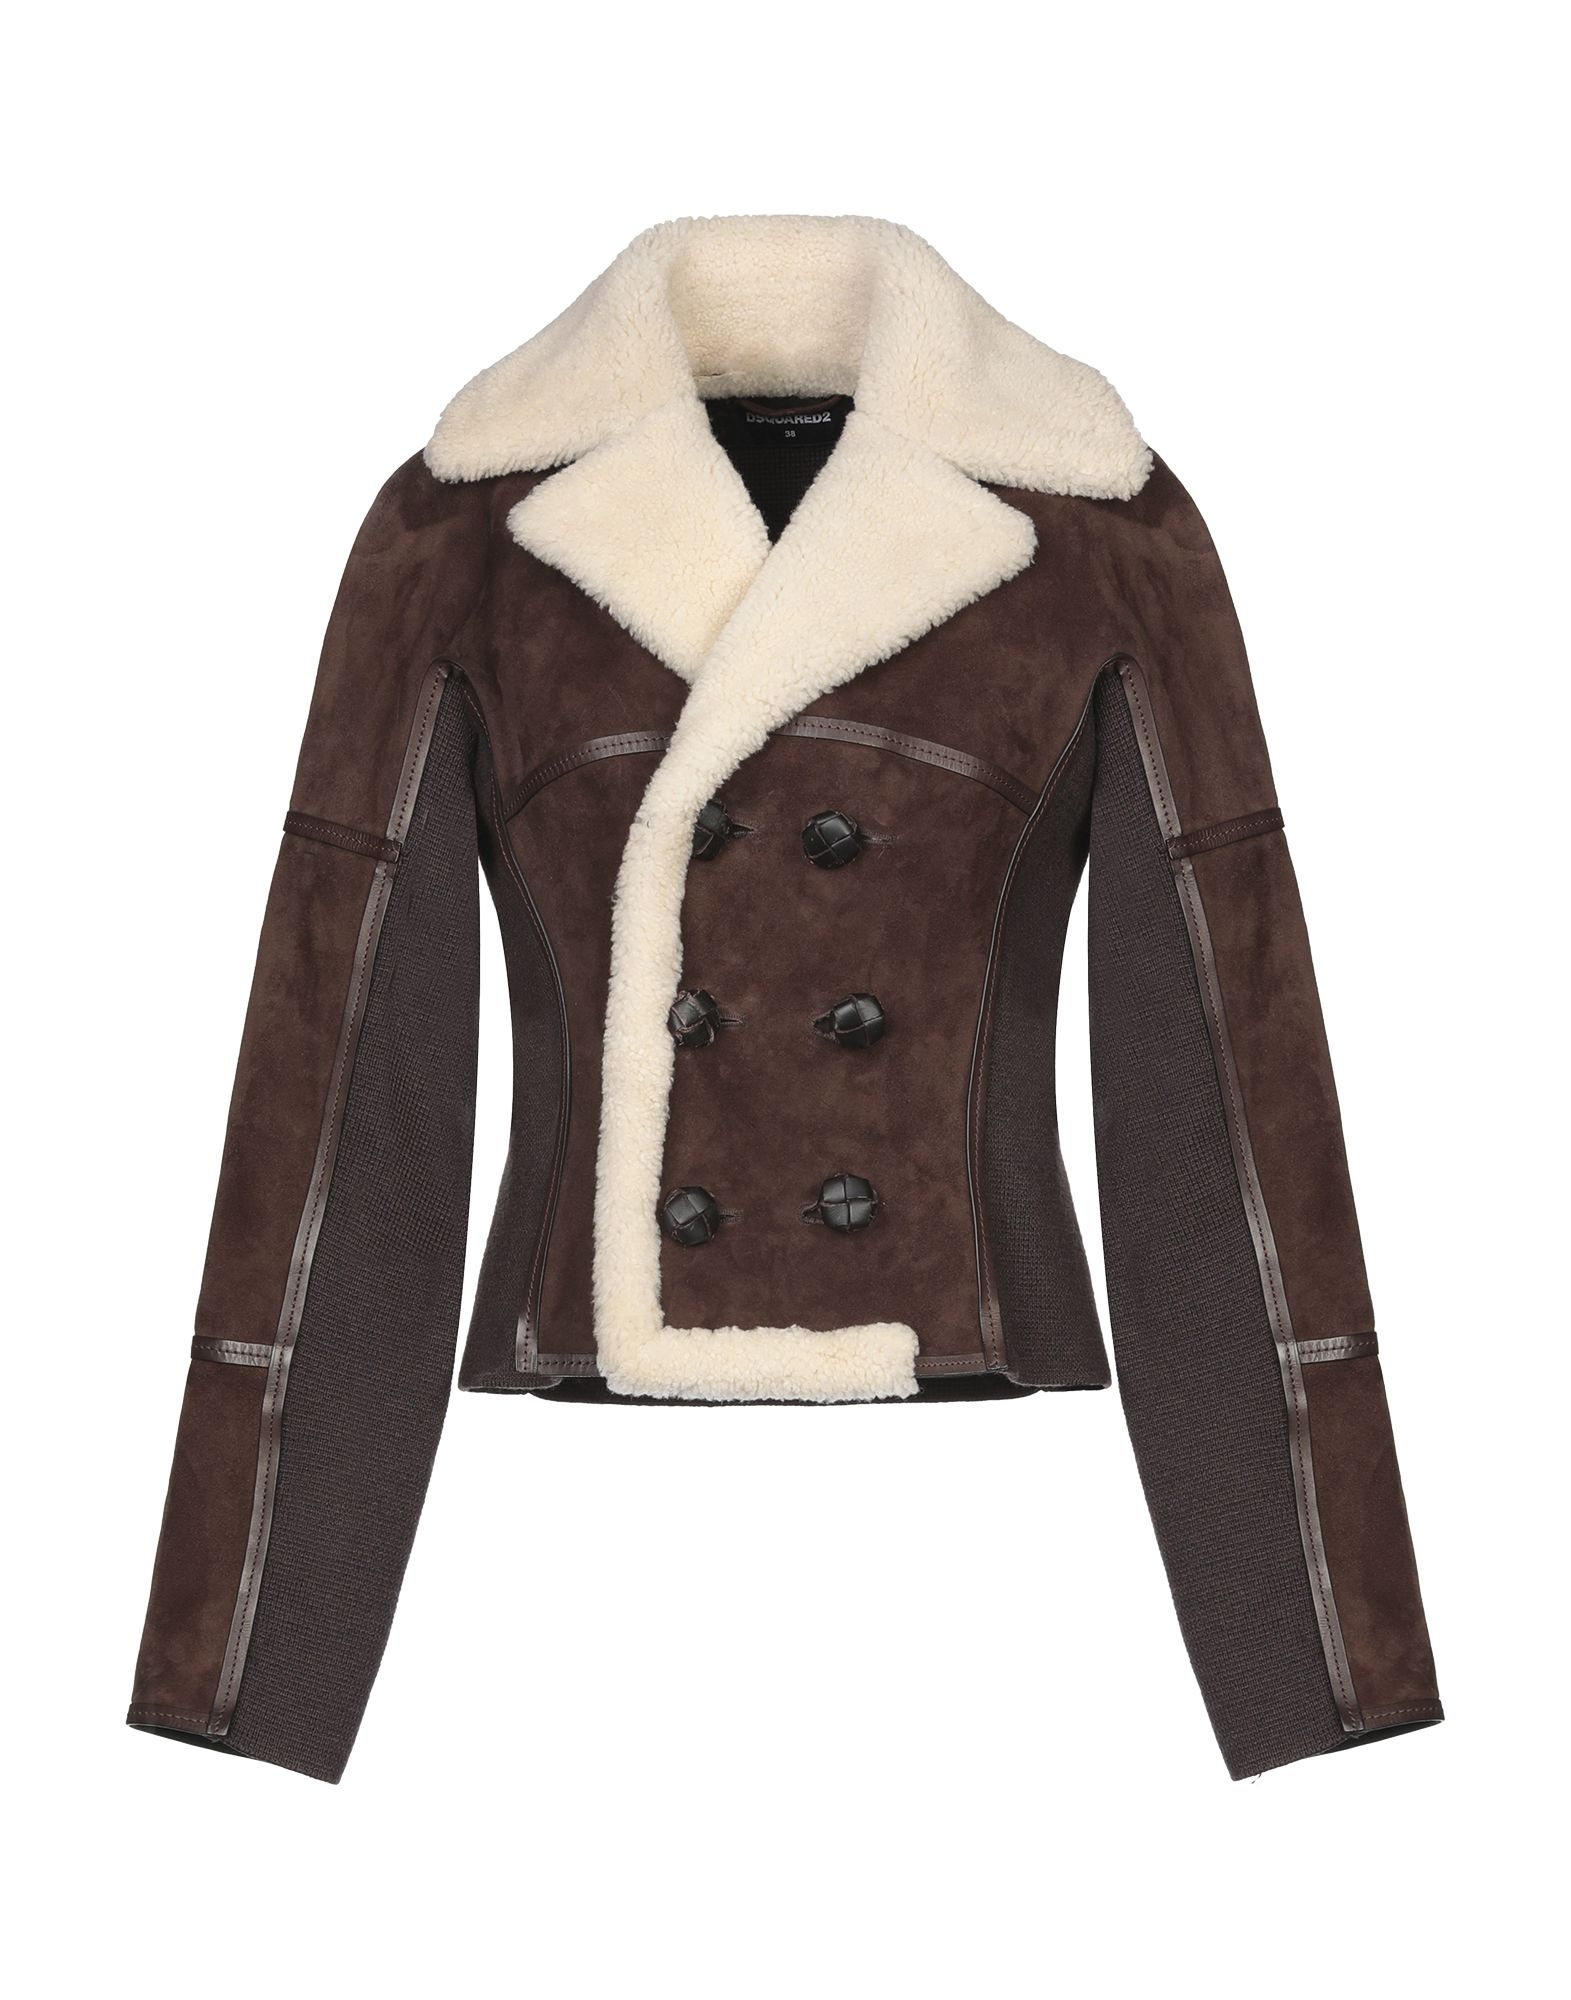 DSQUARED2 Jackets. leather, knitted, suede effect, no appliqués, double-breasted, button closing, lapel collar, no pockets, long sleeves, unlined, solid color, contains non-textile parts of animal origin. 100% Shearling, Virgin Wool